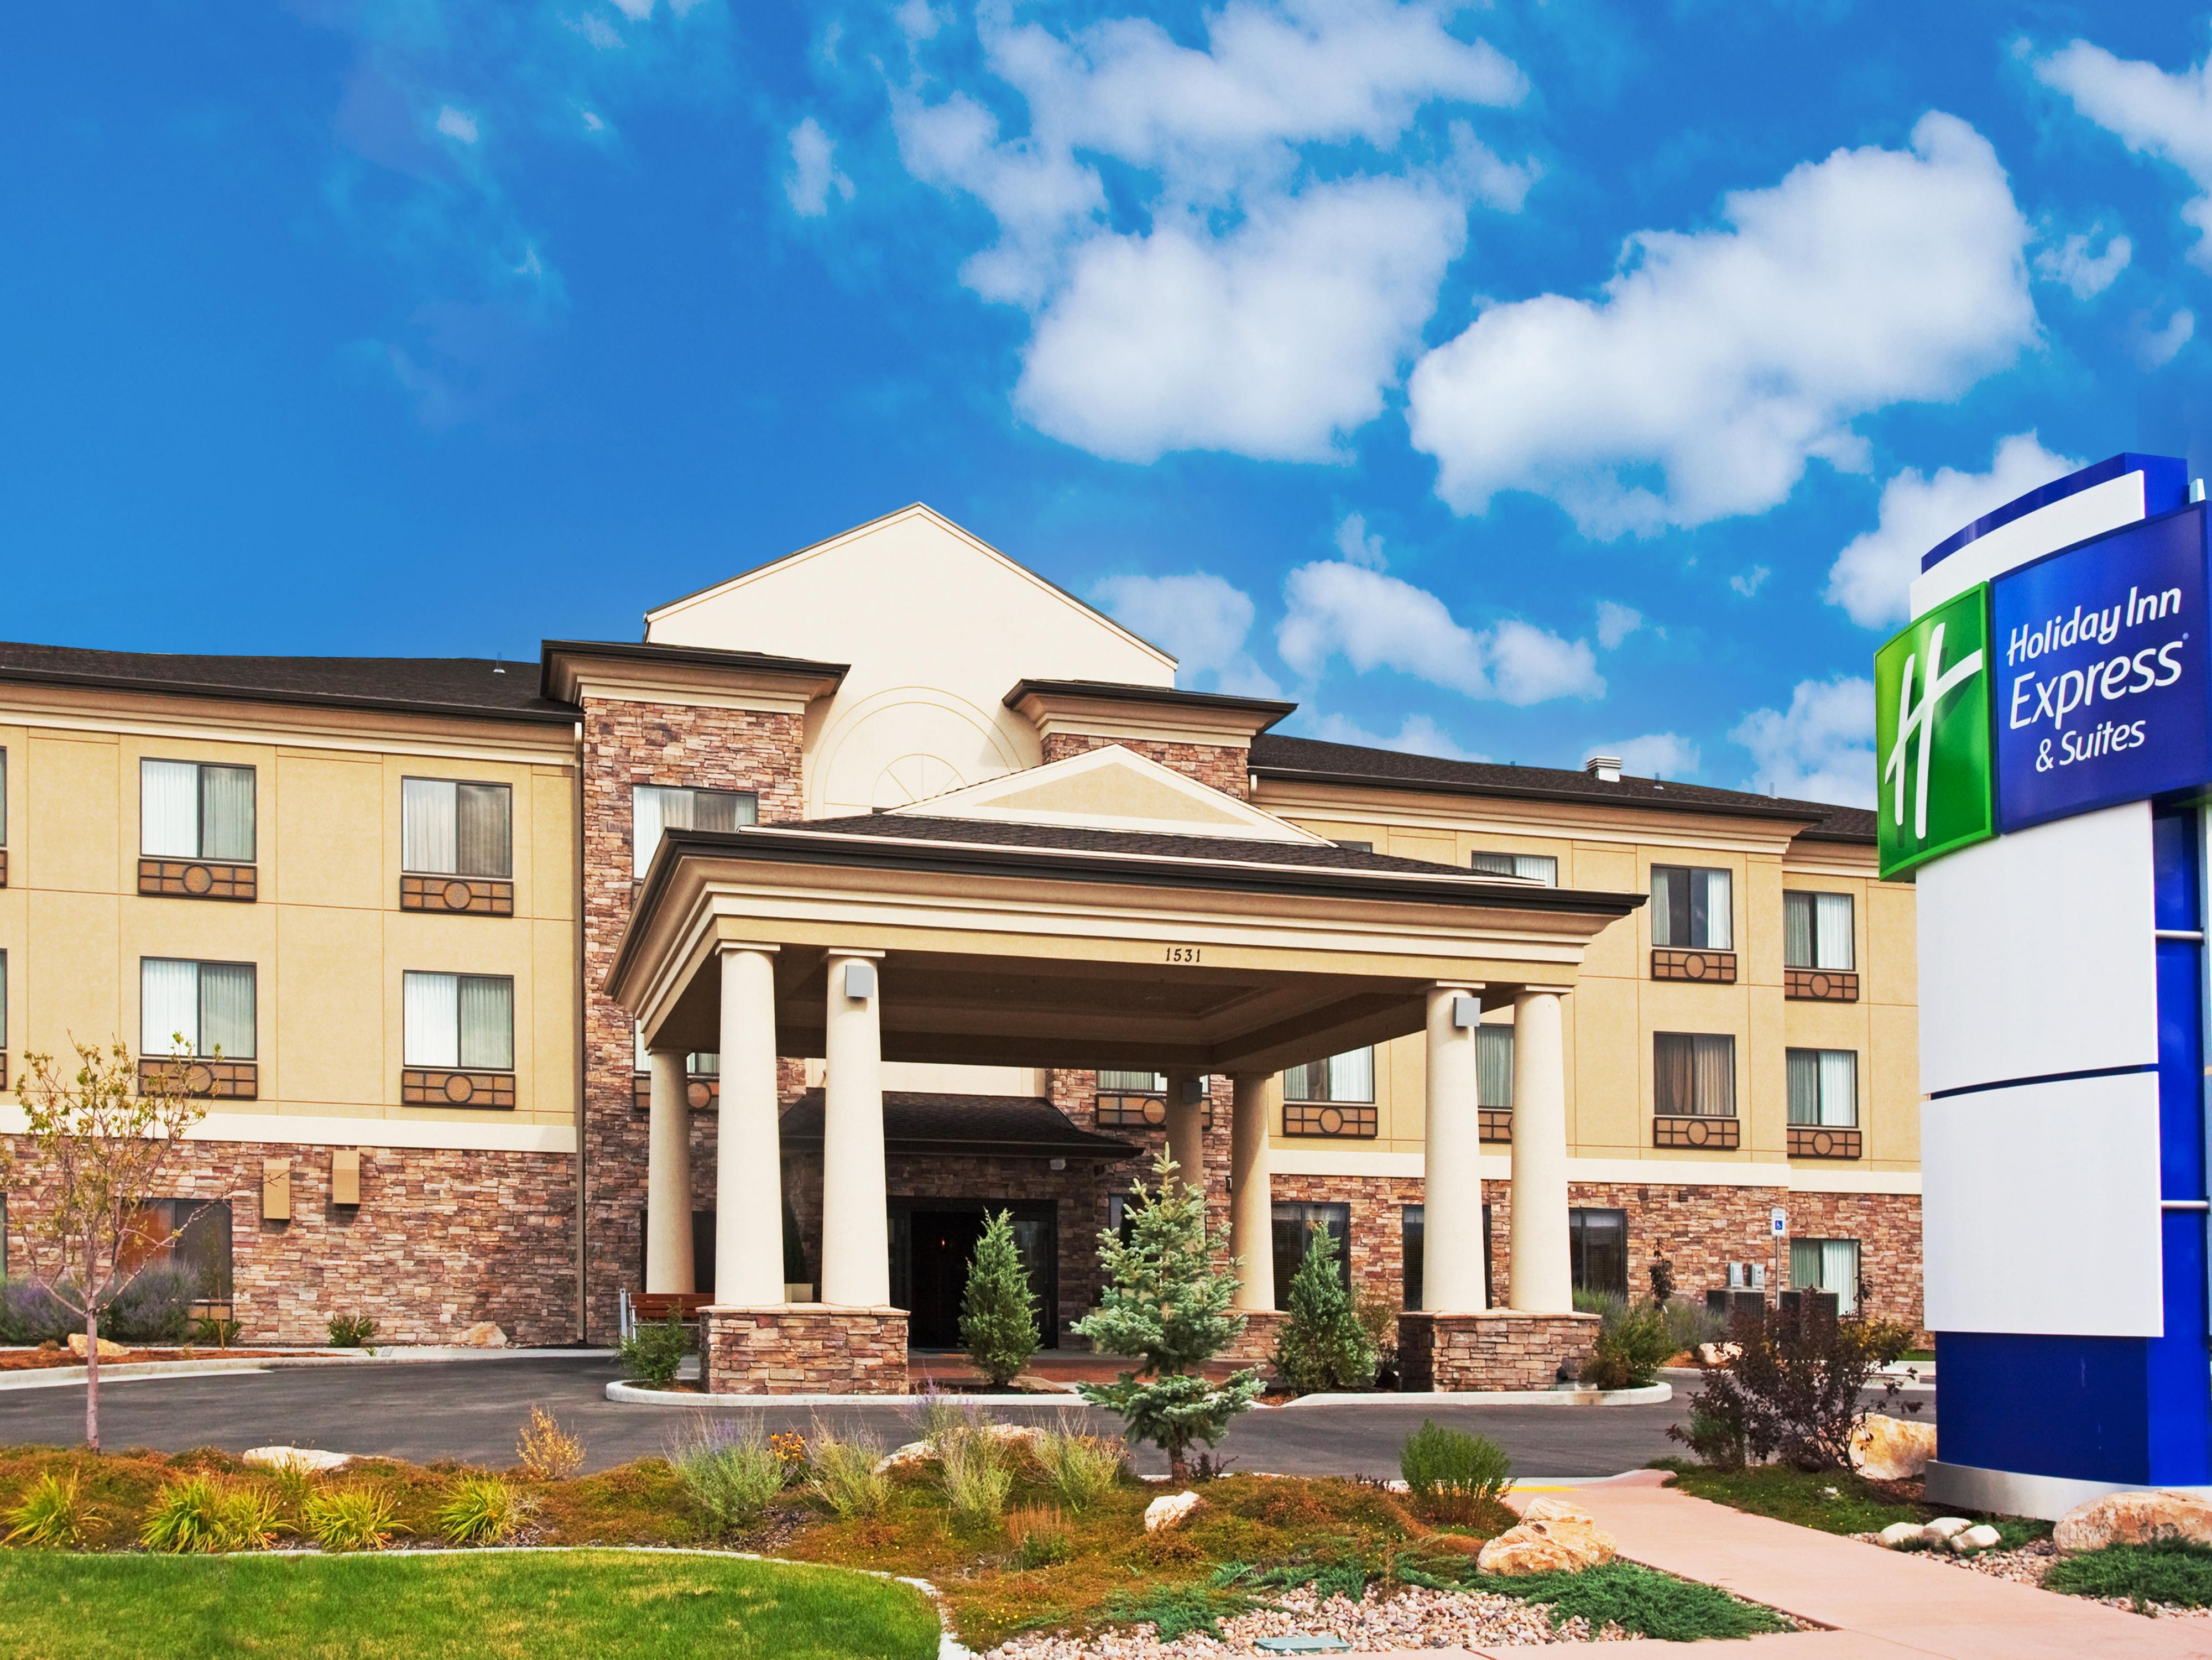 Holiday Inn Express Suites Tooele Map Driving Directions